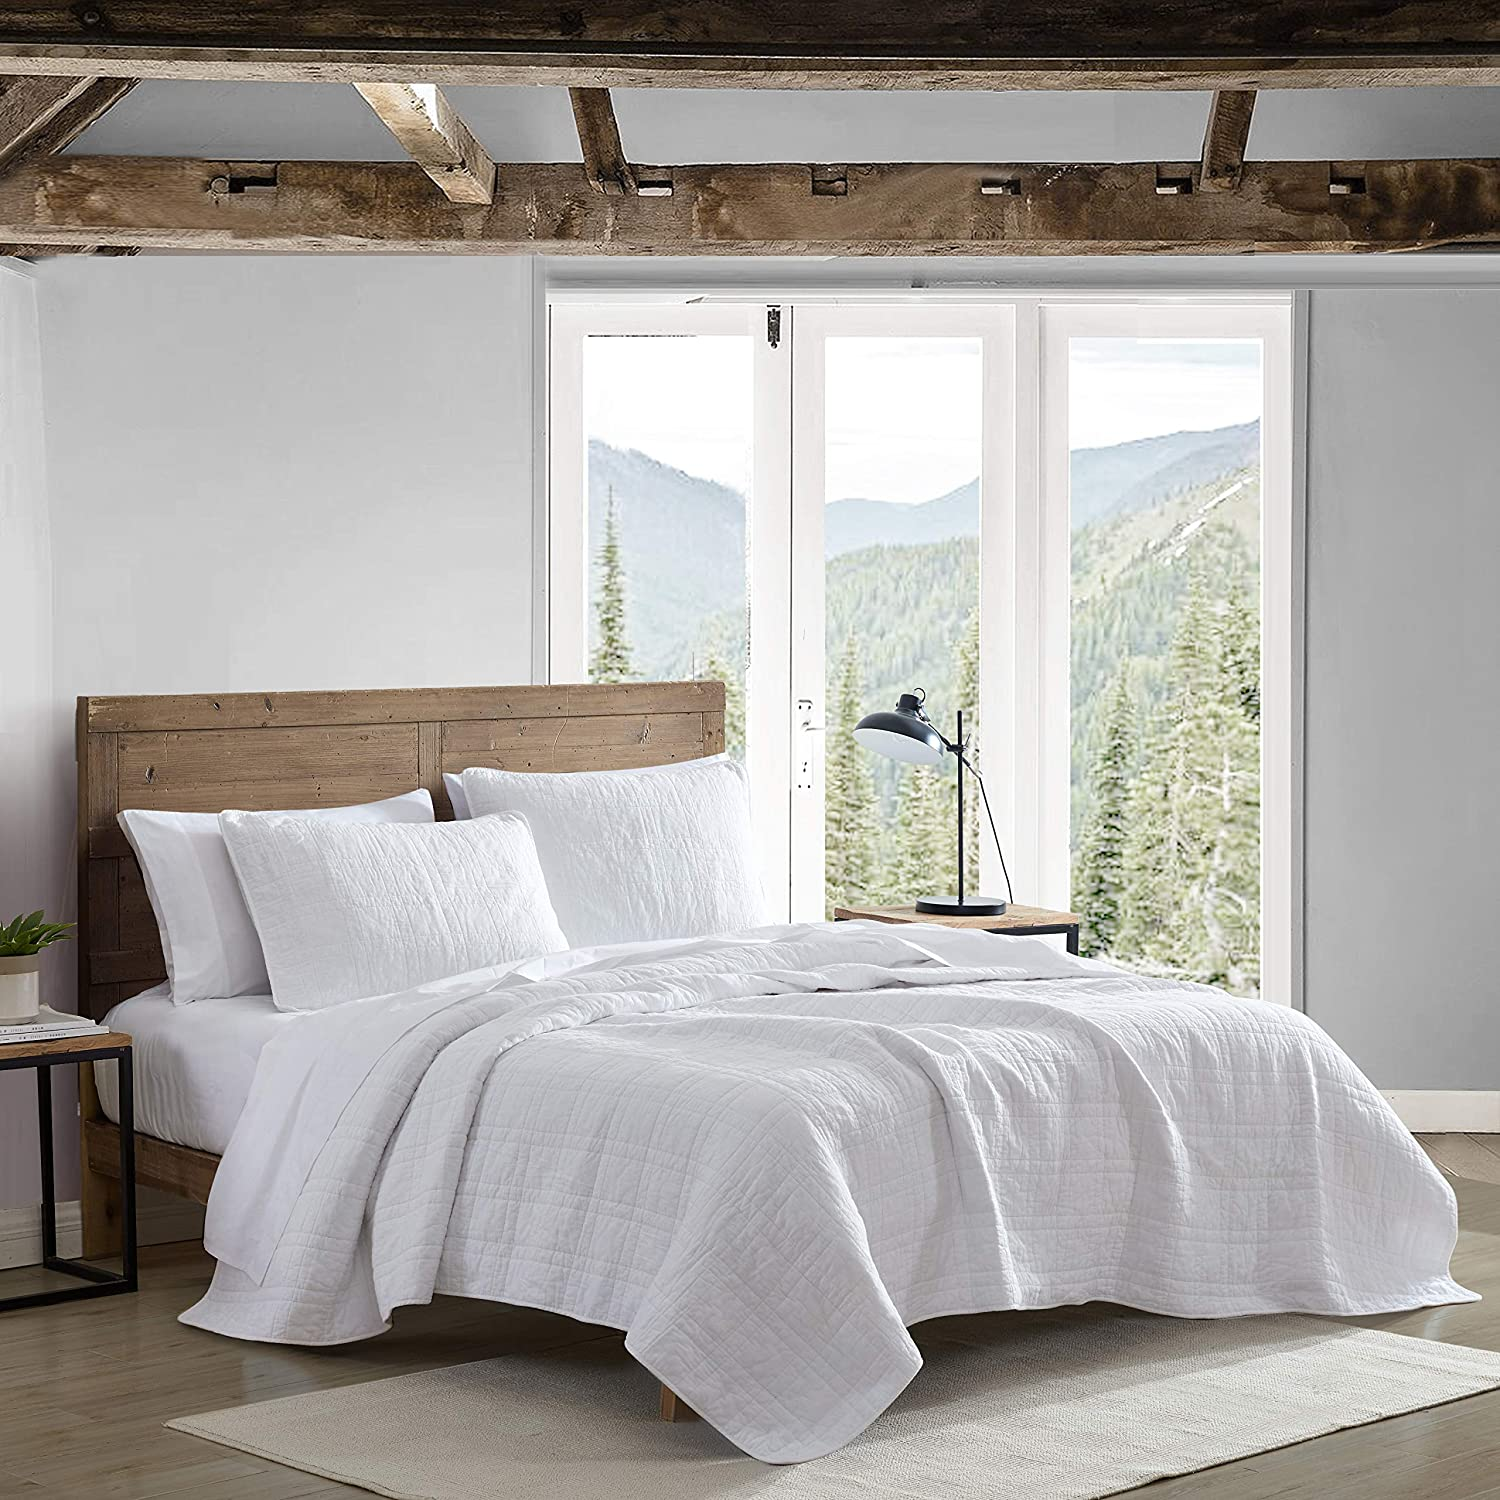 Eddie Bauer Home | Jasper Trail Collection | Quilt Set - 100% Cotton, Reversible, All Season Bedding with Matching Sham, Pre-Washed for Added Comfort, Twin, White